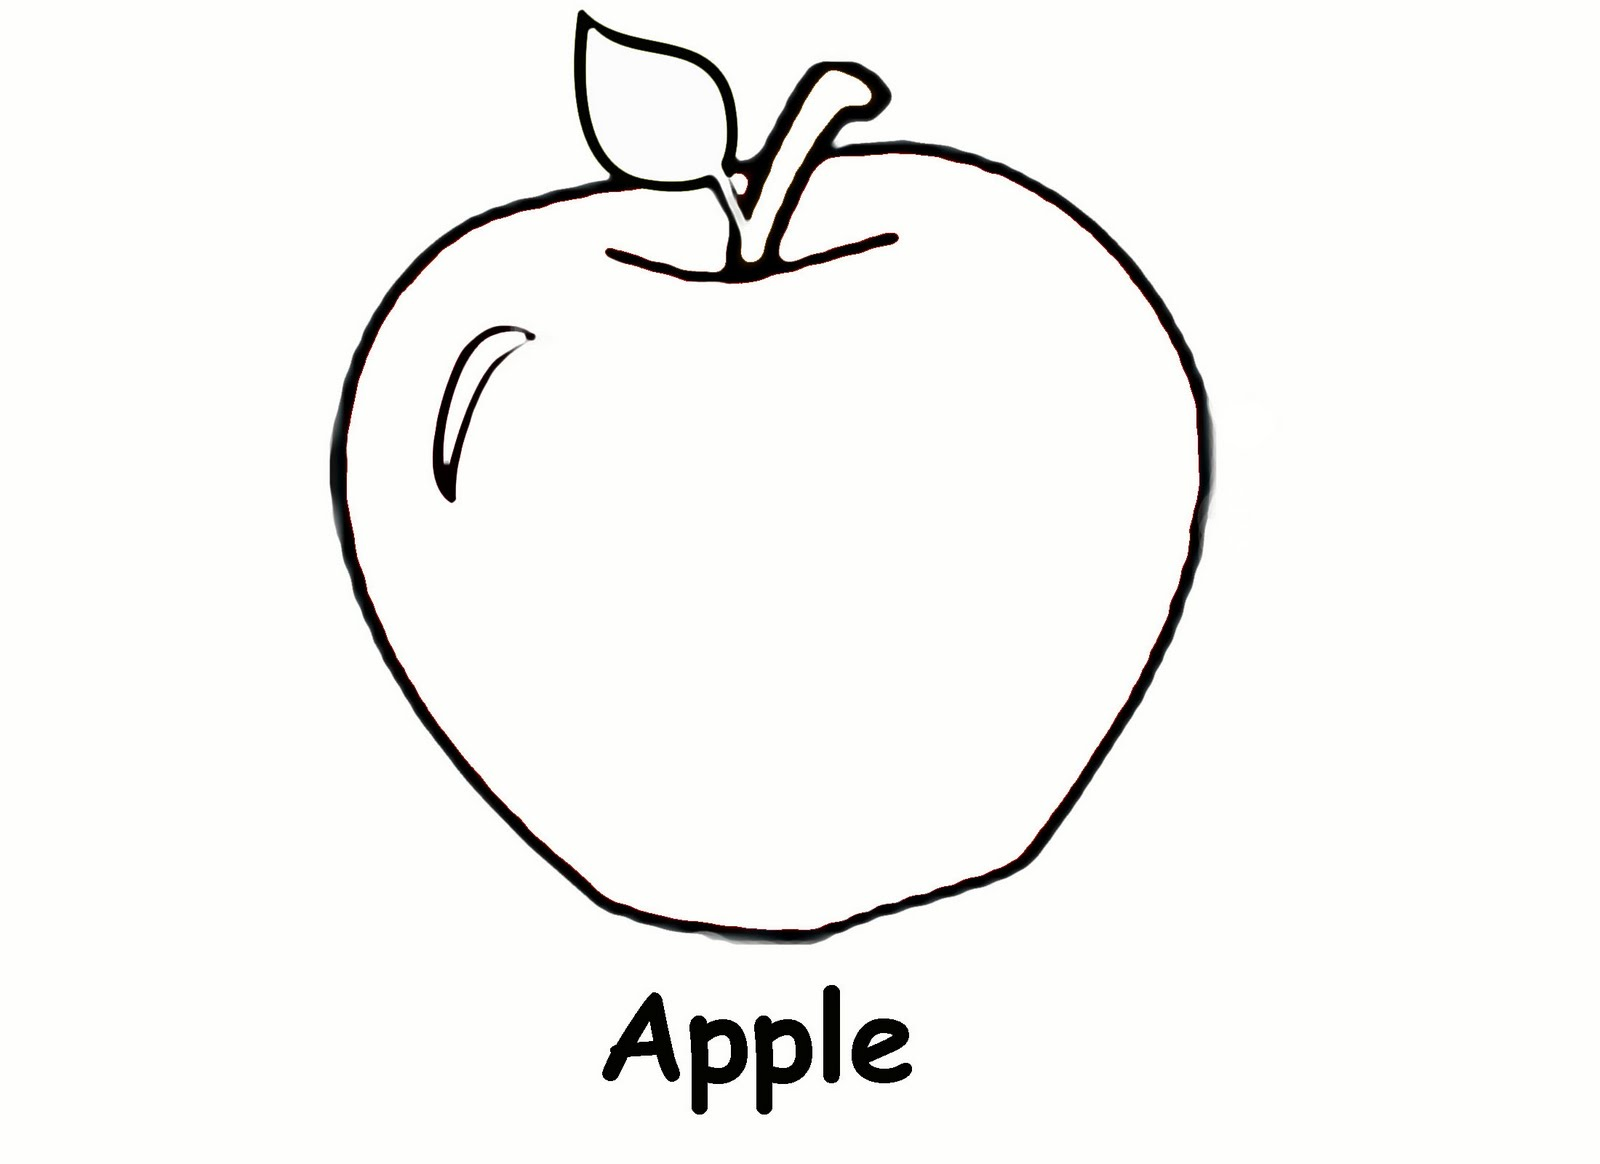 apple coloring pages kids - photo#24